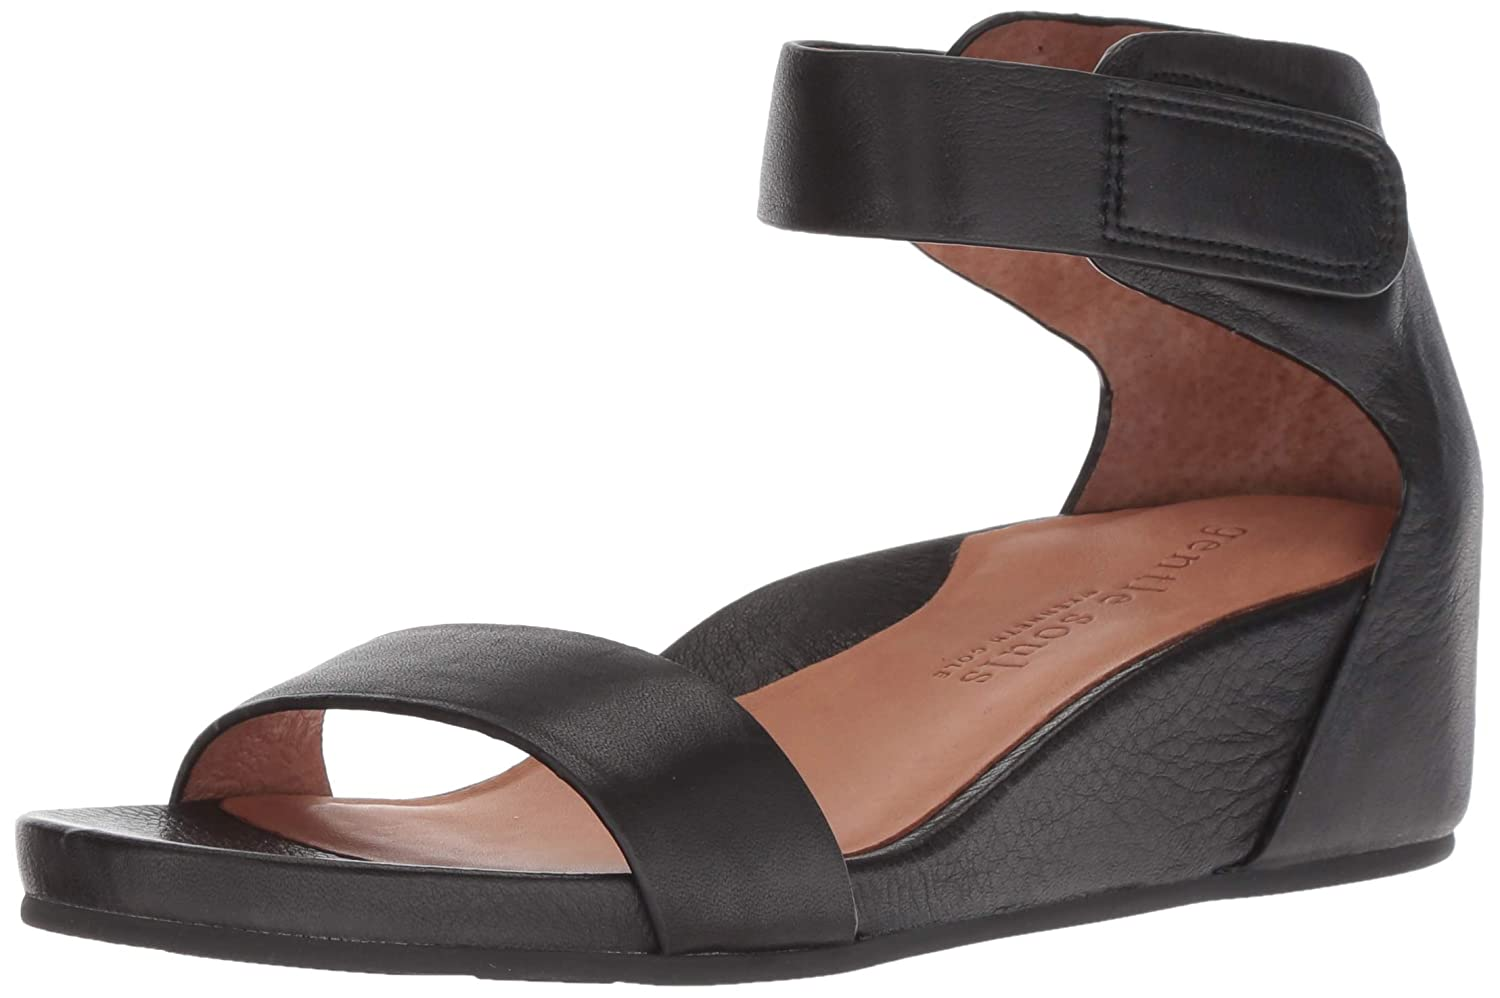 e6f1ebd739c Gentle souls kenneth cole gianna leather sandal shoes jpg 1500x998 Gentle  souls logo